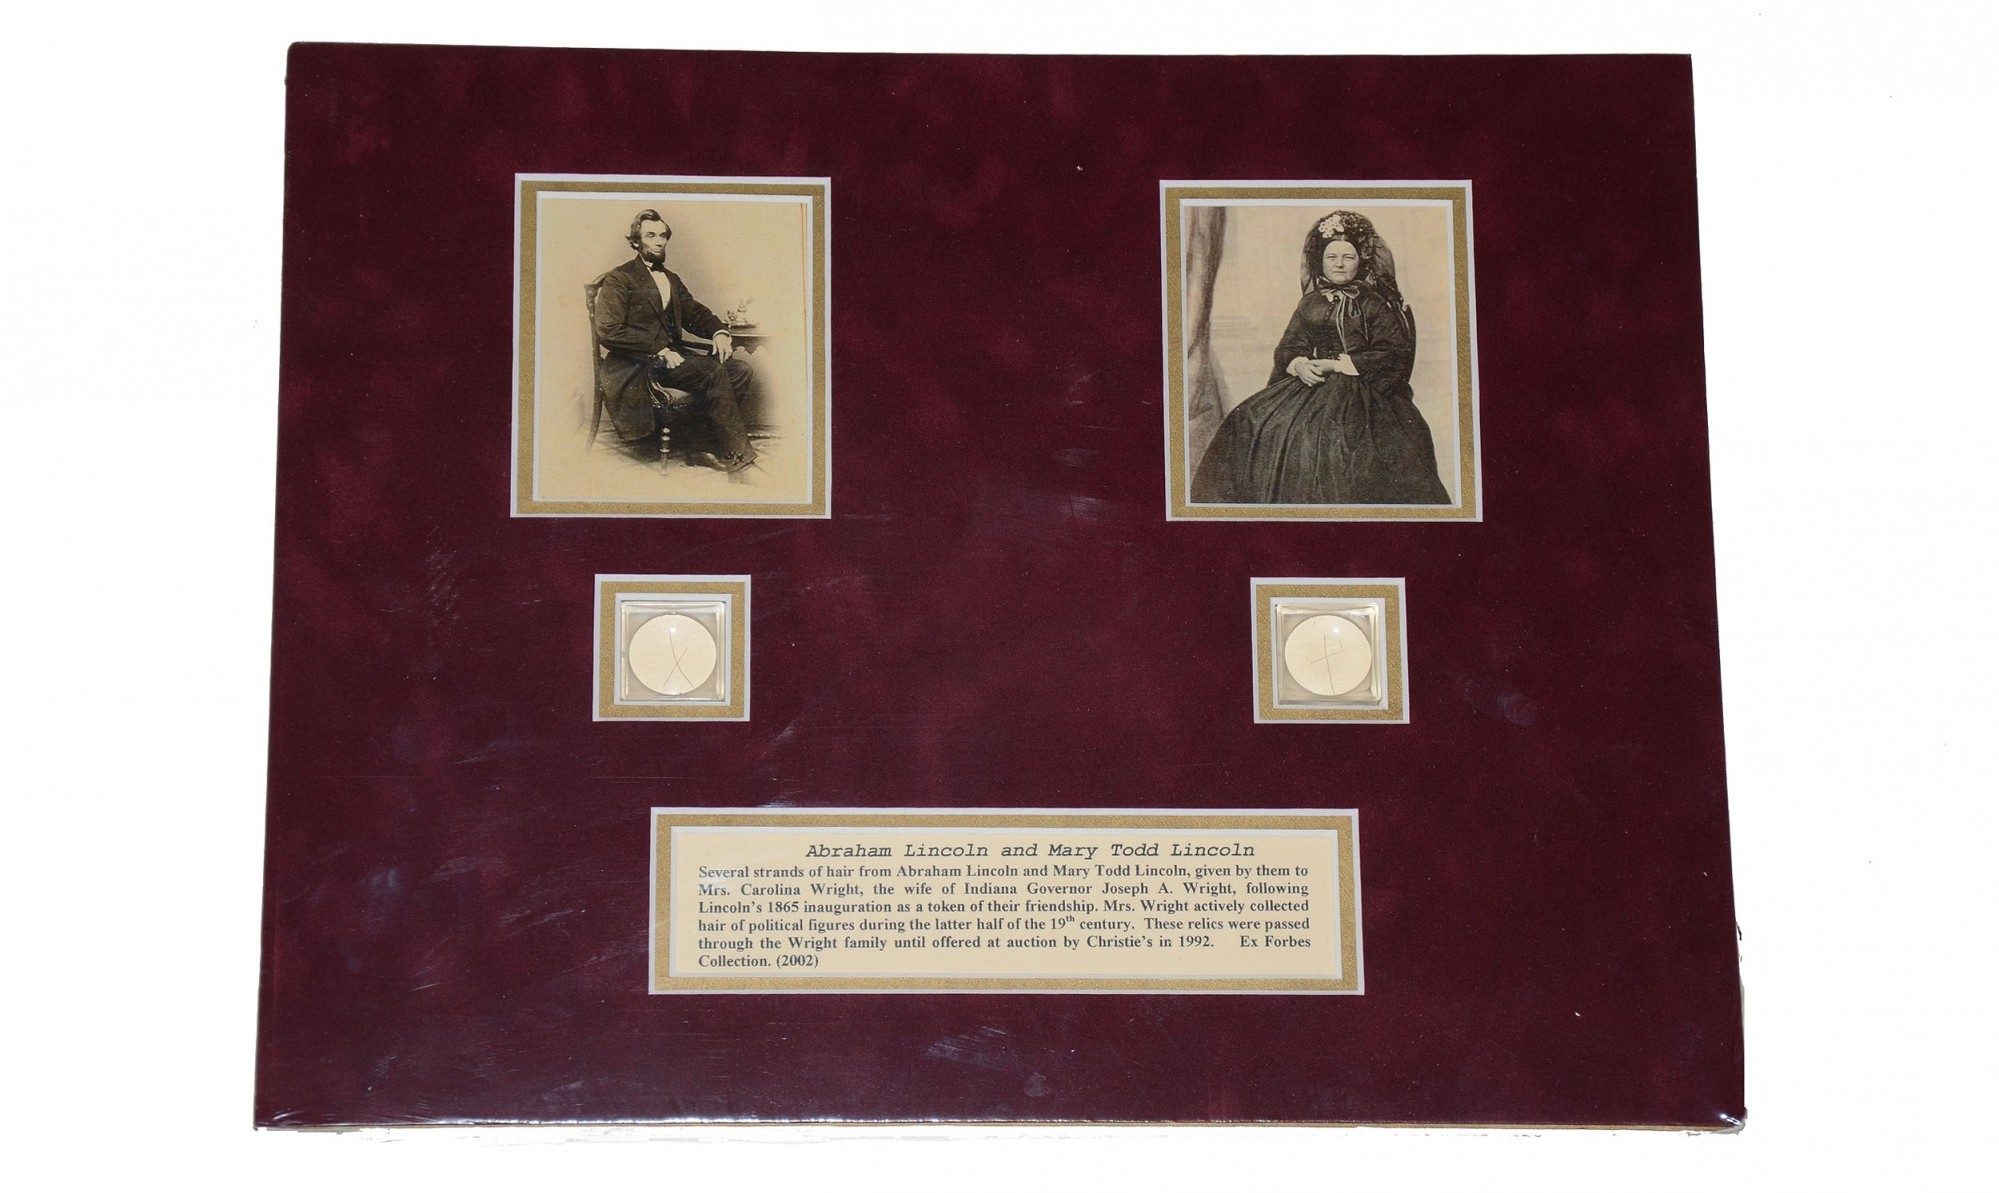 STRANDS OF HAIR FROM ABRAHAM LINCOLN AND MARY LINCOLN